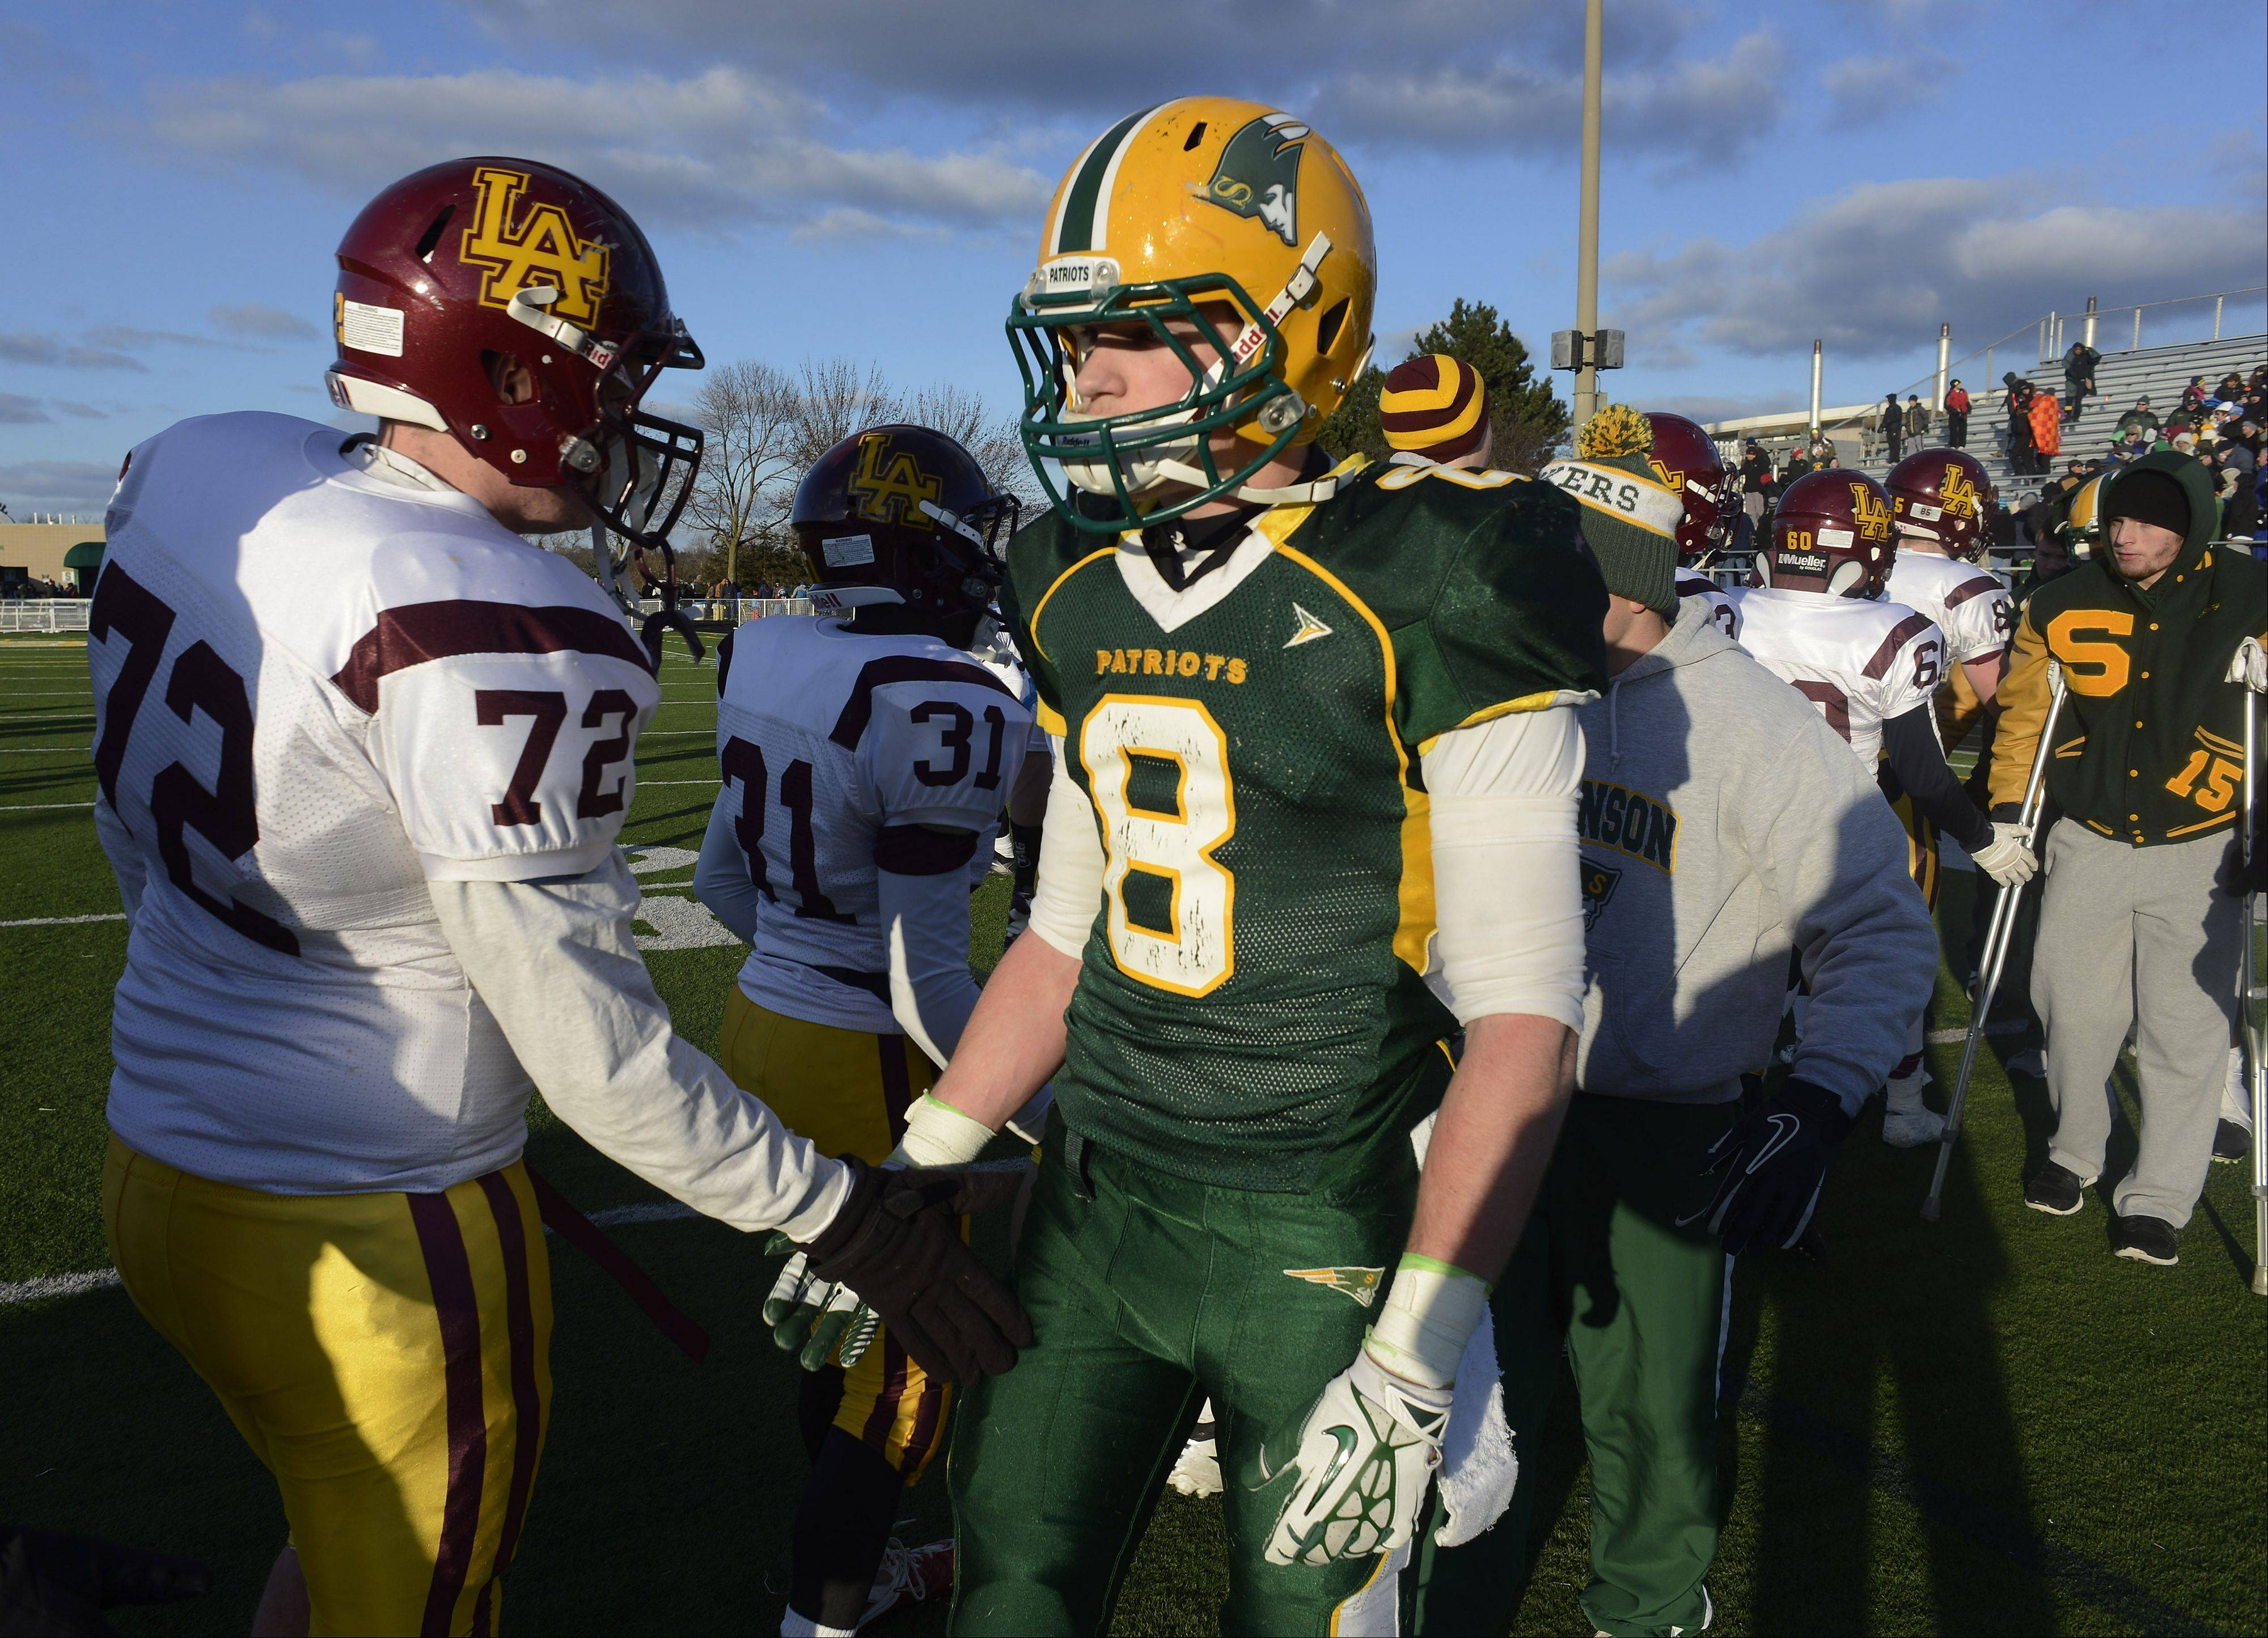 Stevenson's Matt Morrissey, right, shakes hands with Loyola players including Jack Kotowski following the Patriots' 15-14 loss during Saturday's class 8A semifinal in Lincolnshire.